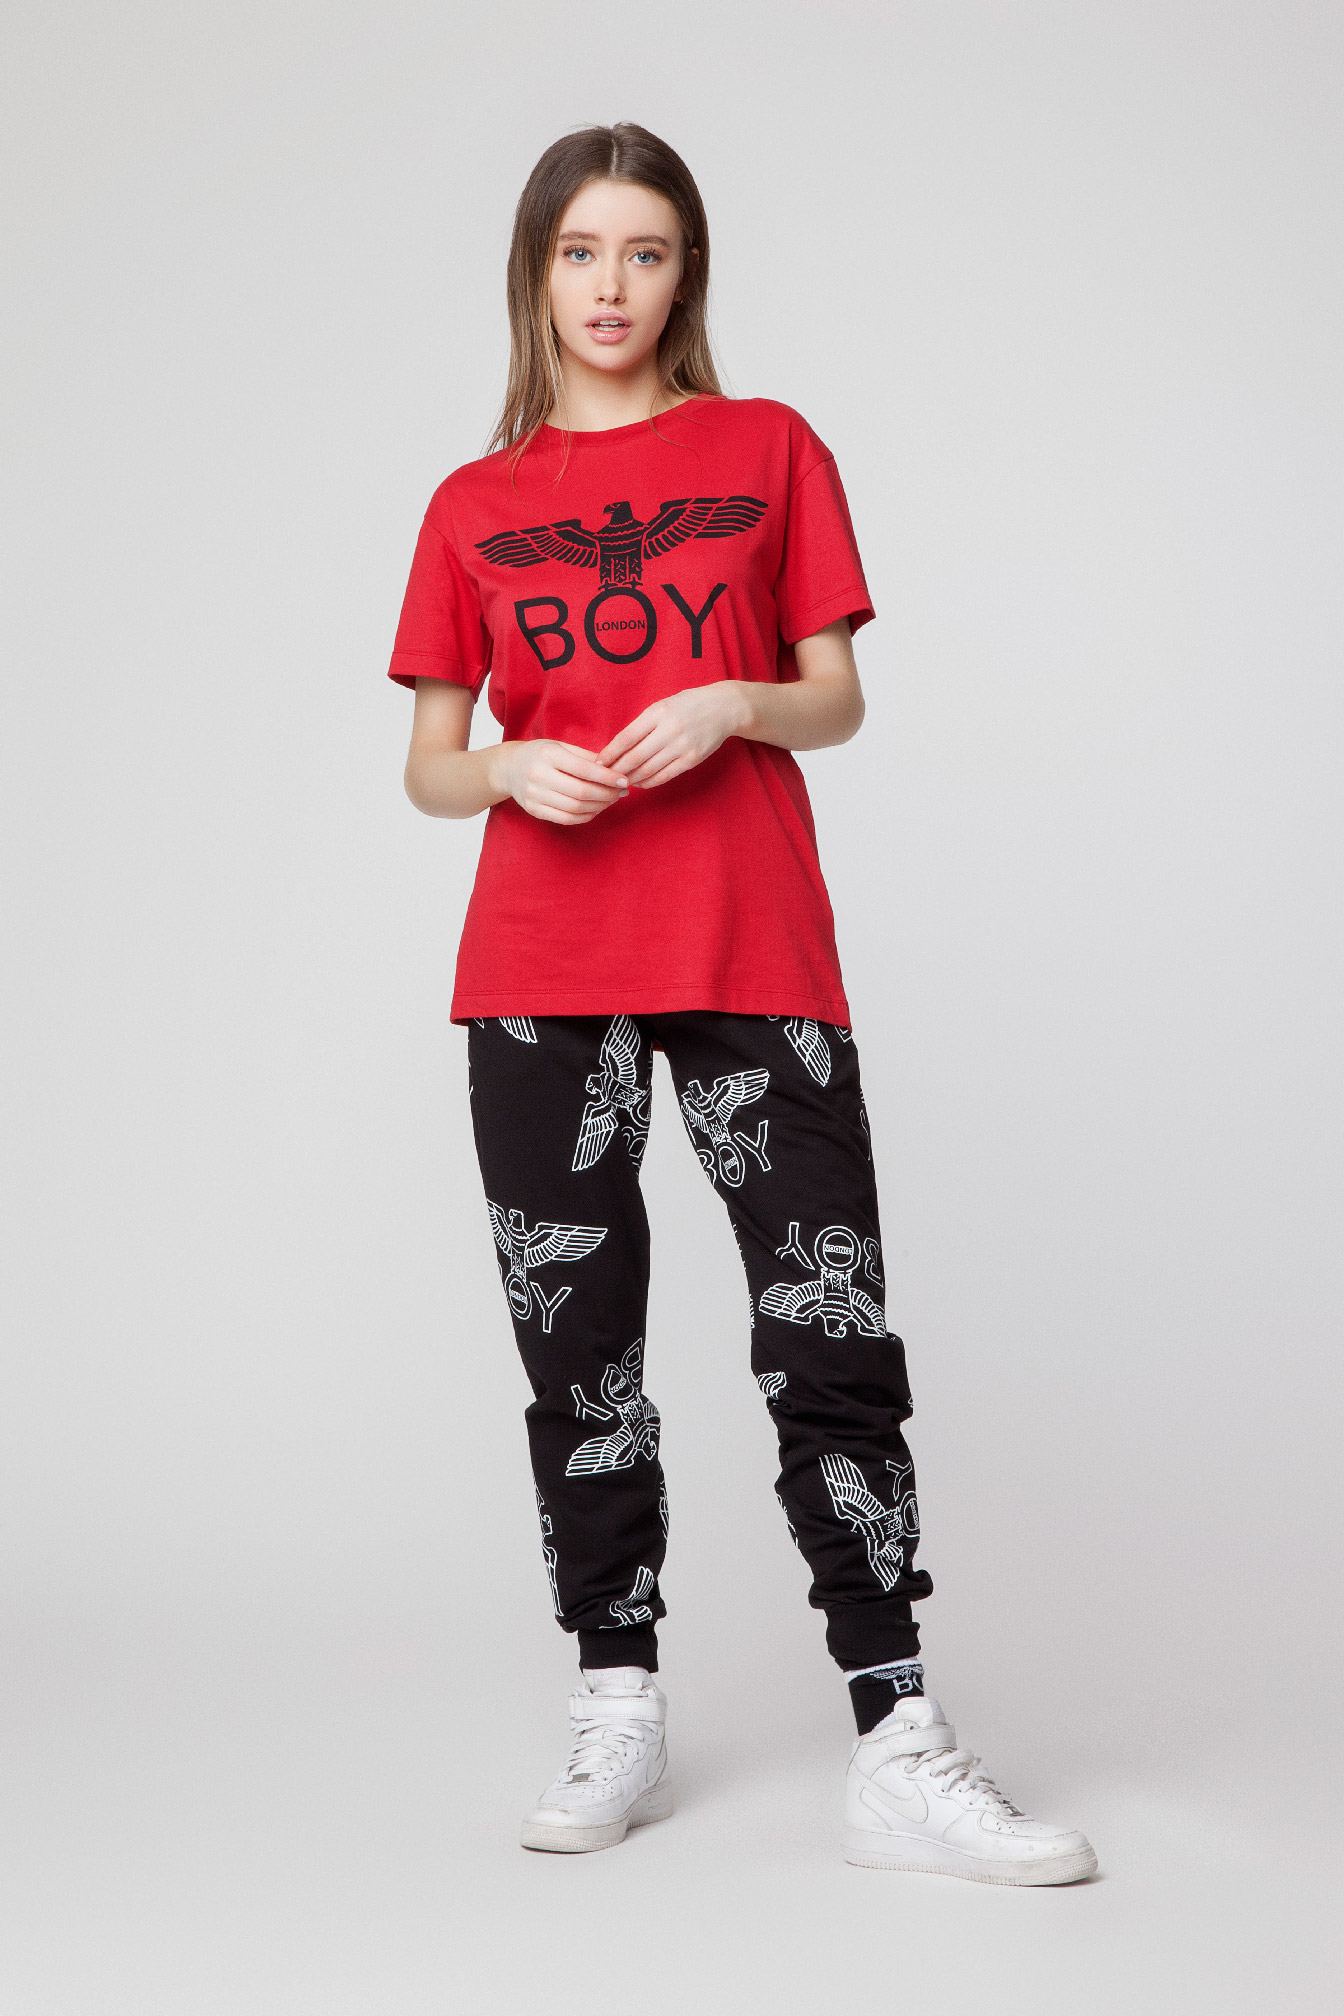 T-SHIRT - BLD2045 - BOY LONDON